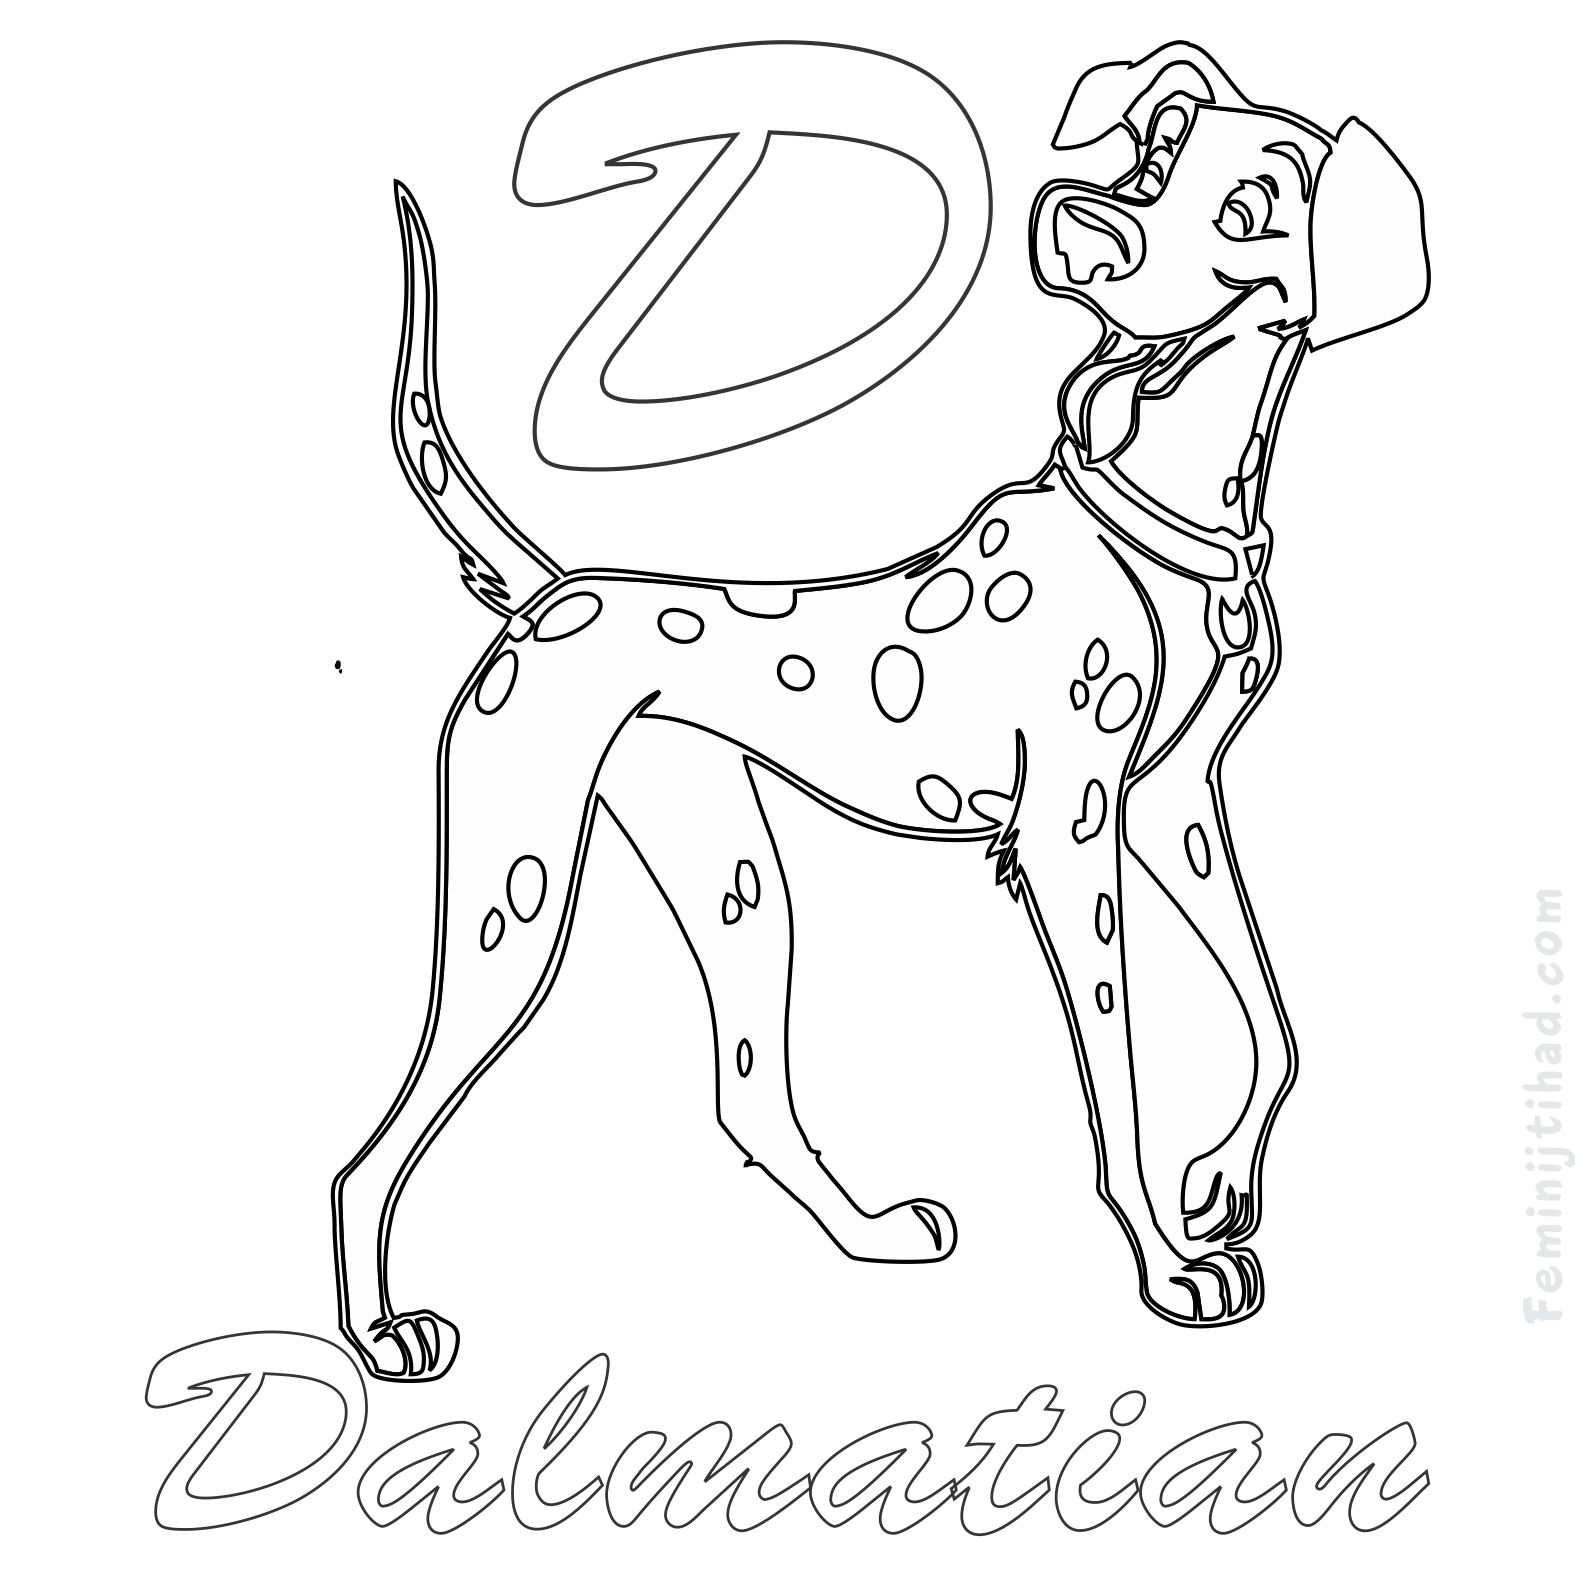 Dalmation Dog Coloring Page at GetDrawings | Free download